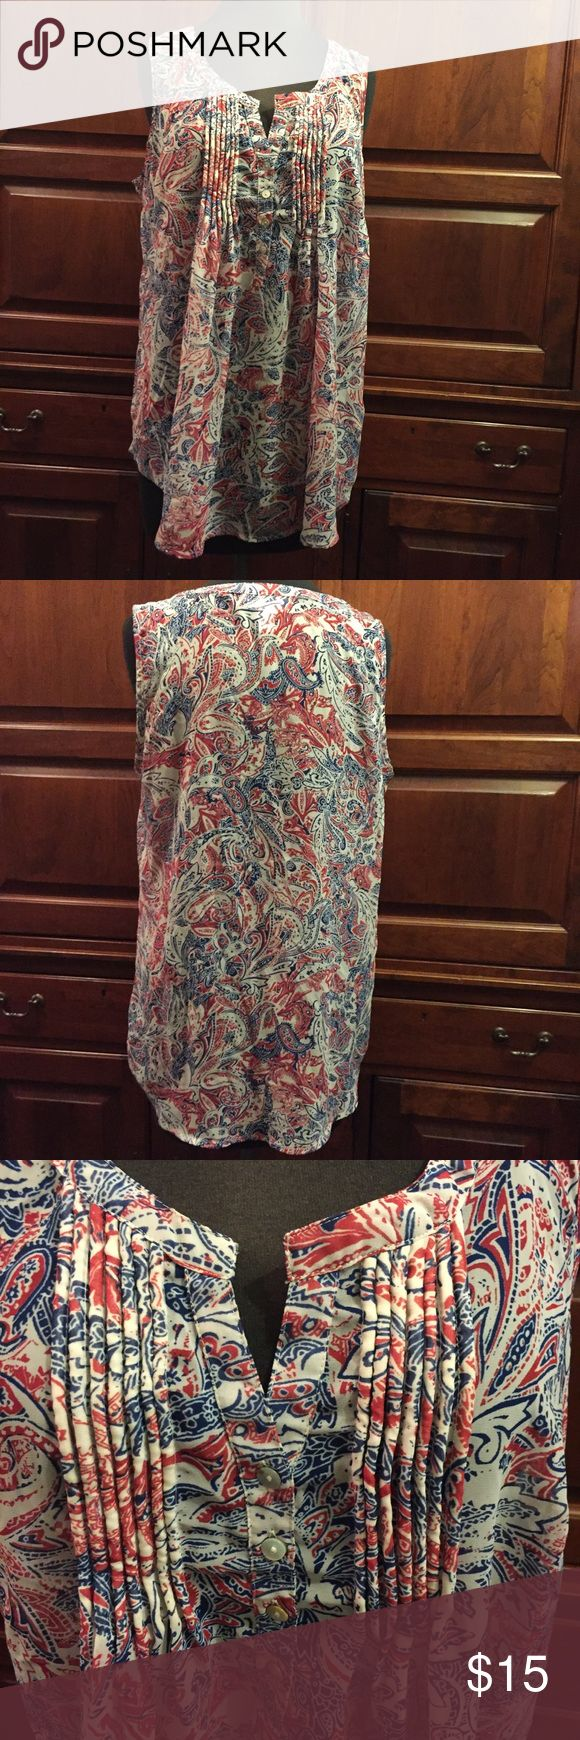 Motherhood loosefitting blouse Red blue and white sleeveless blouse. Button top with puckered material to give dimension. See picture.  Paisley style print Motherhood Maternity Tops Blouses